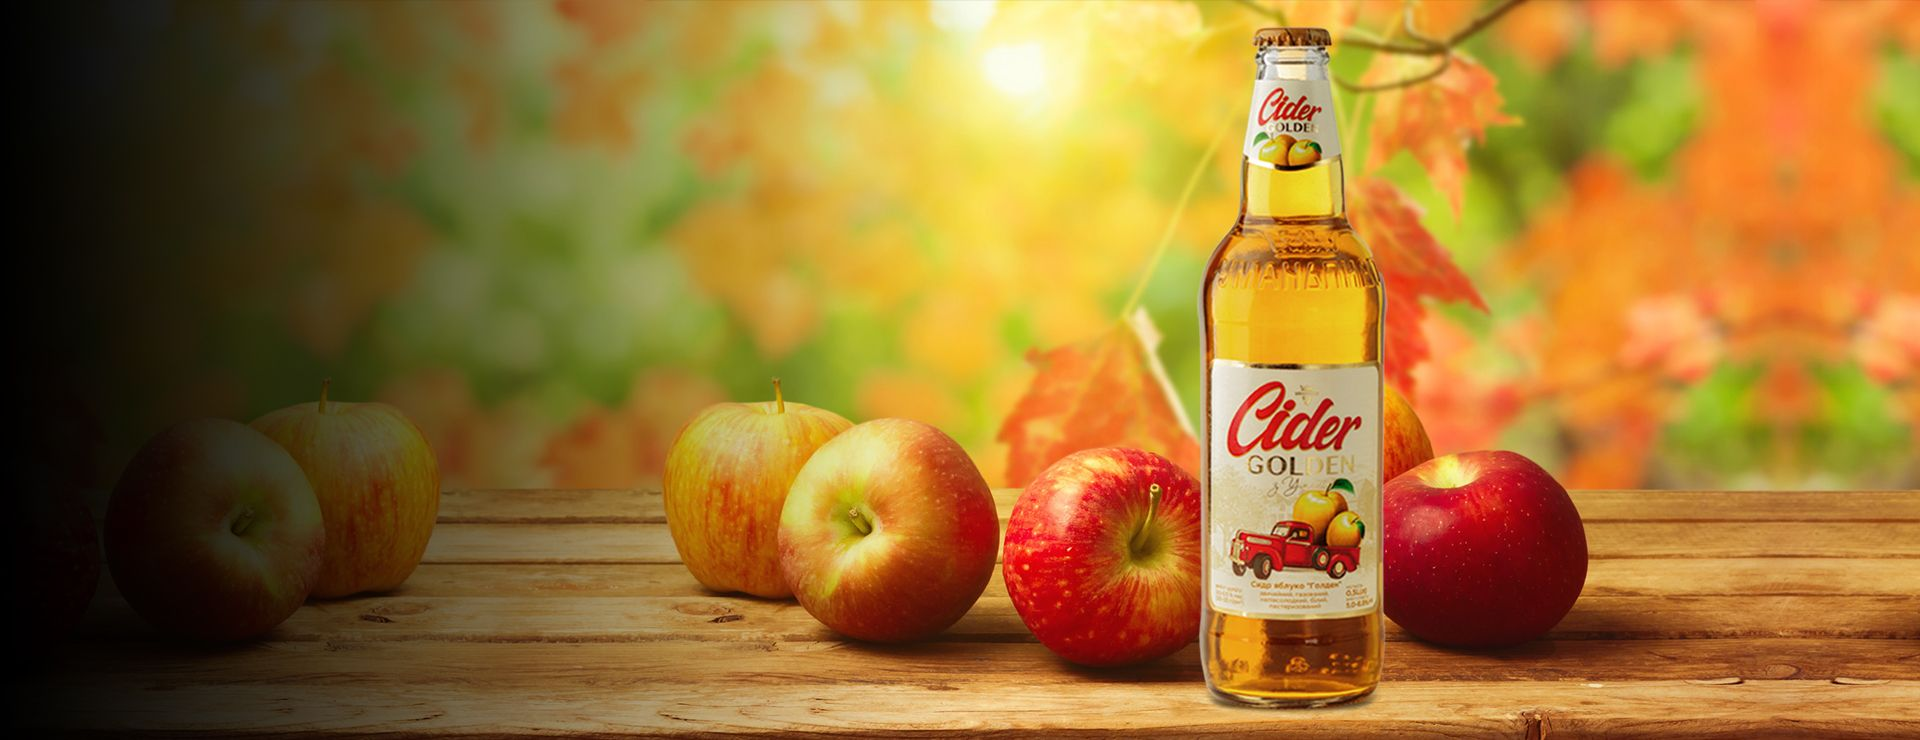 Cider Golden Apple